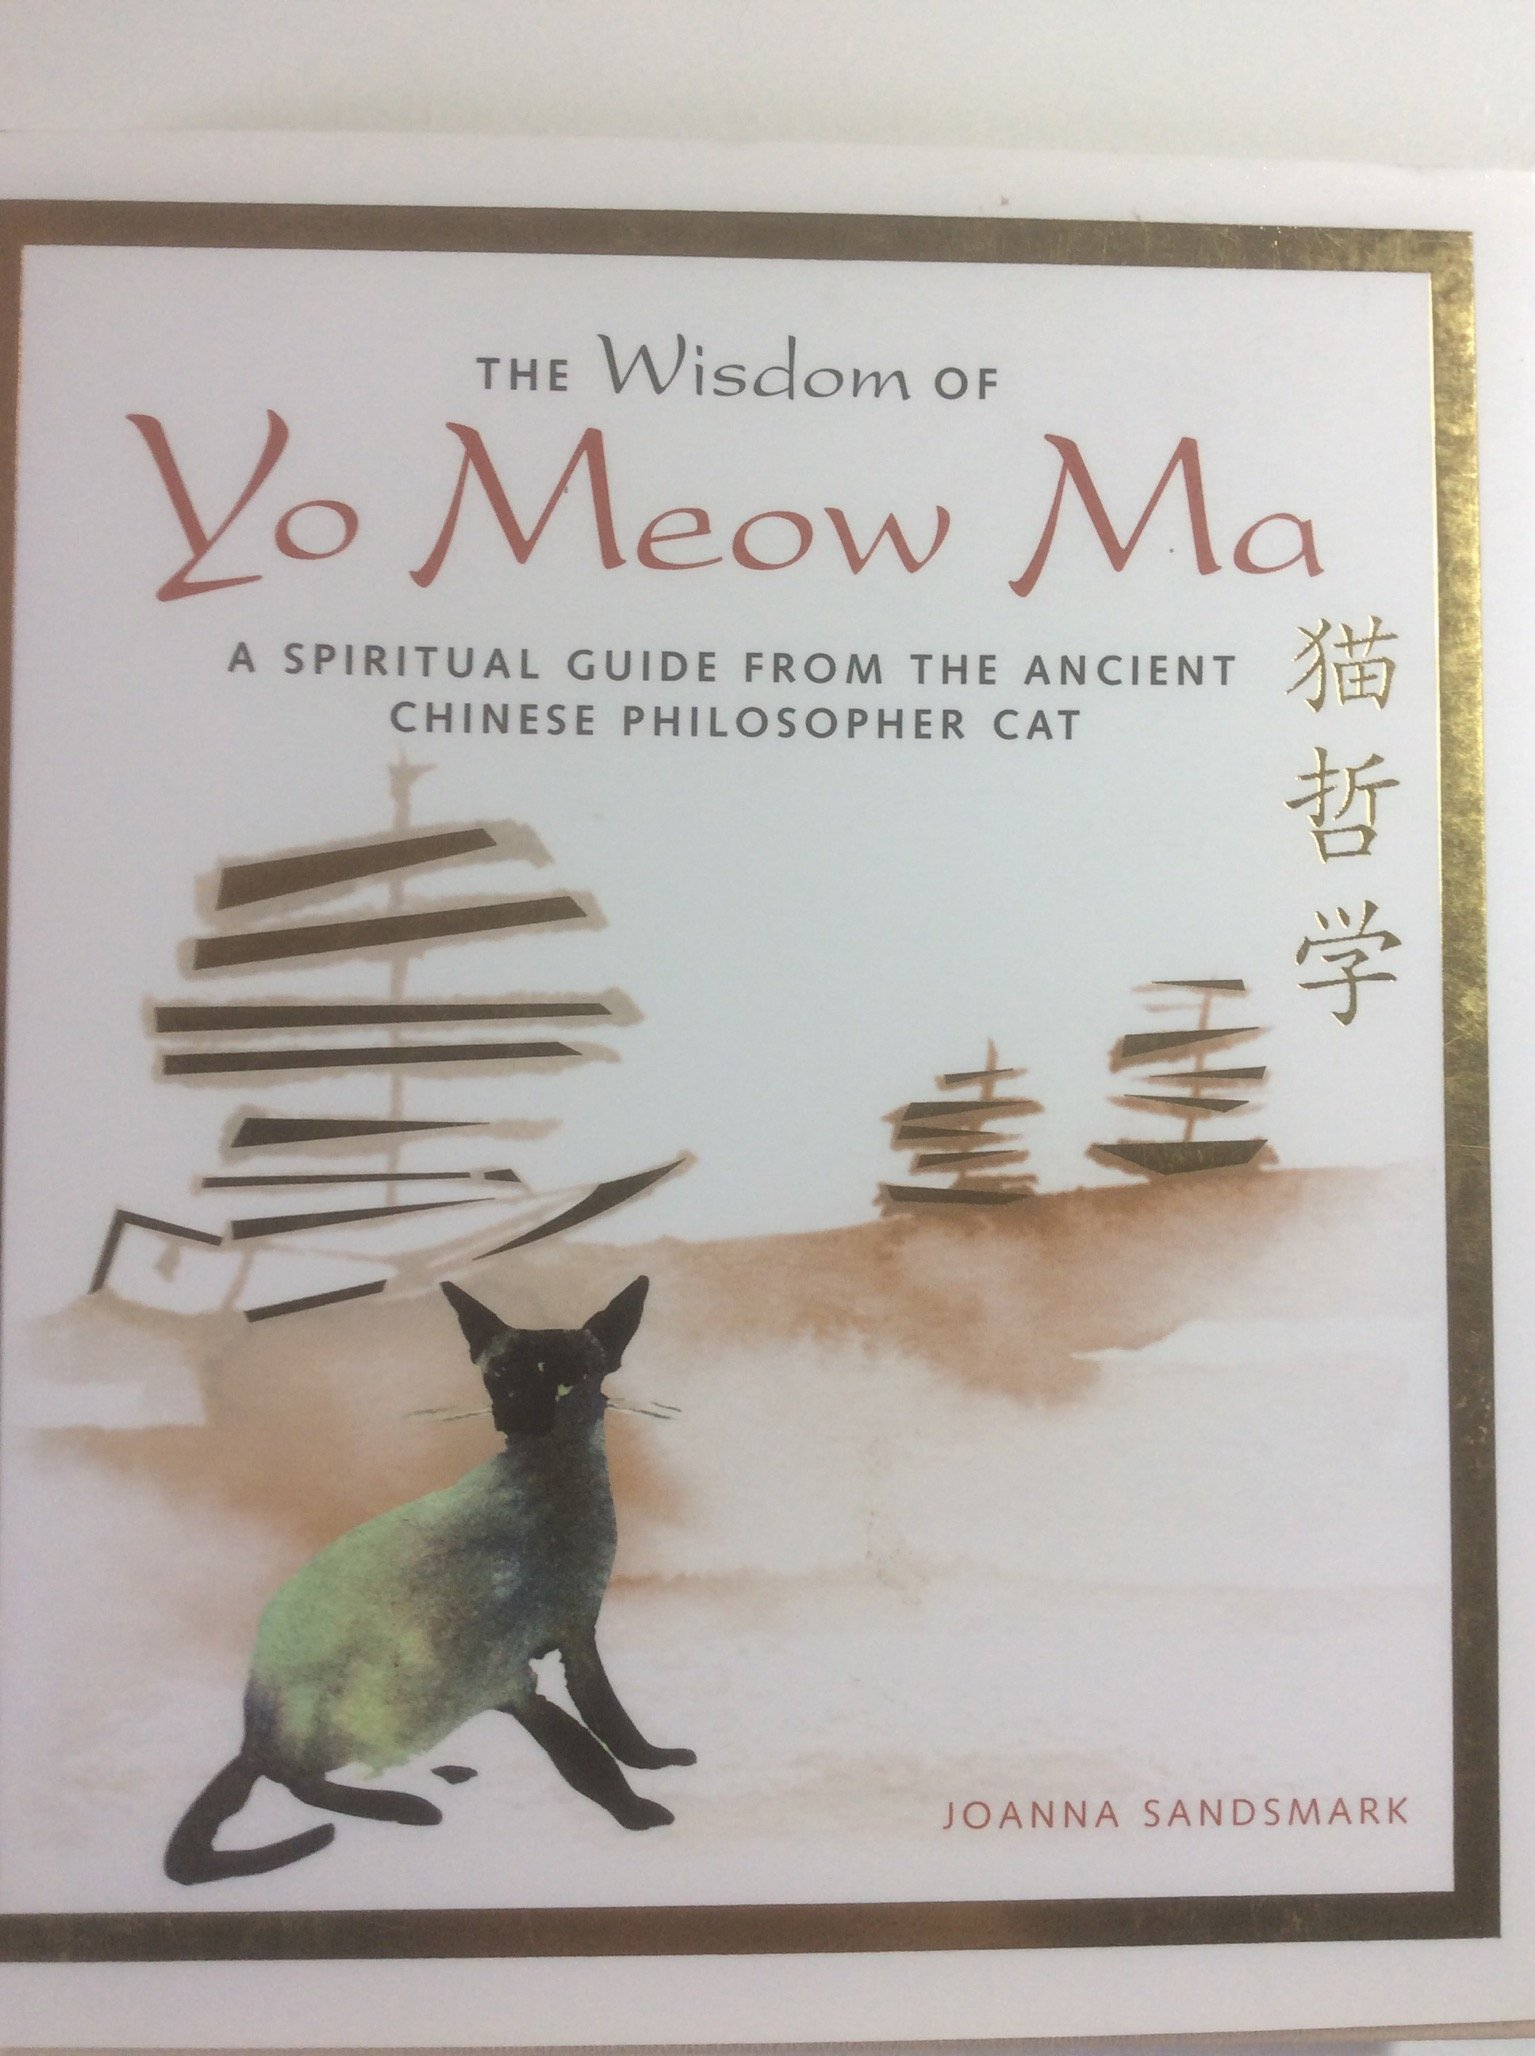 The Wisdom of Yo Meow Ma (A Spiritual Guide From the Ancient Chinese Philosopher Cat) ebook